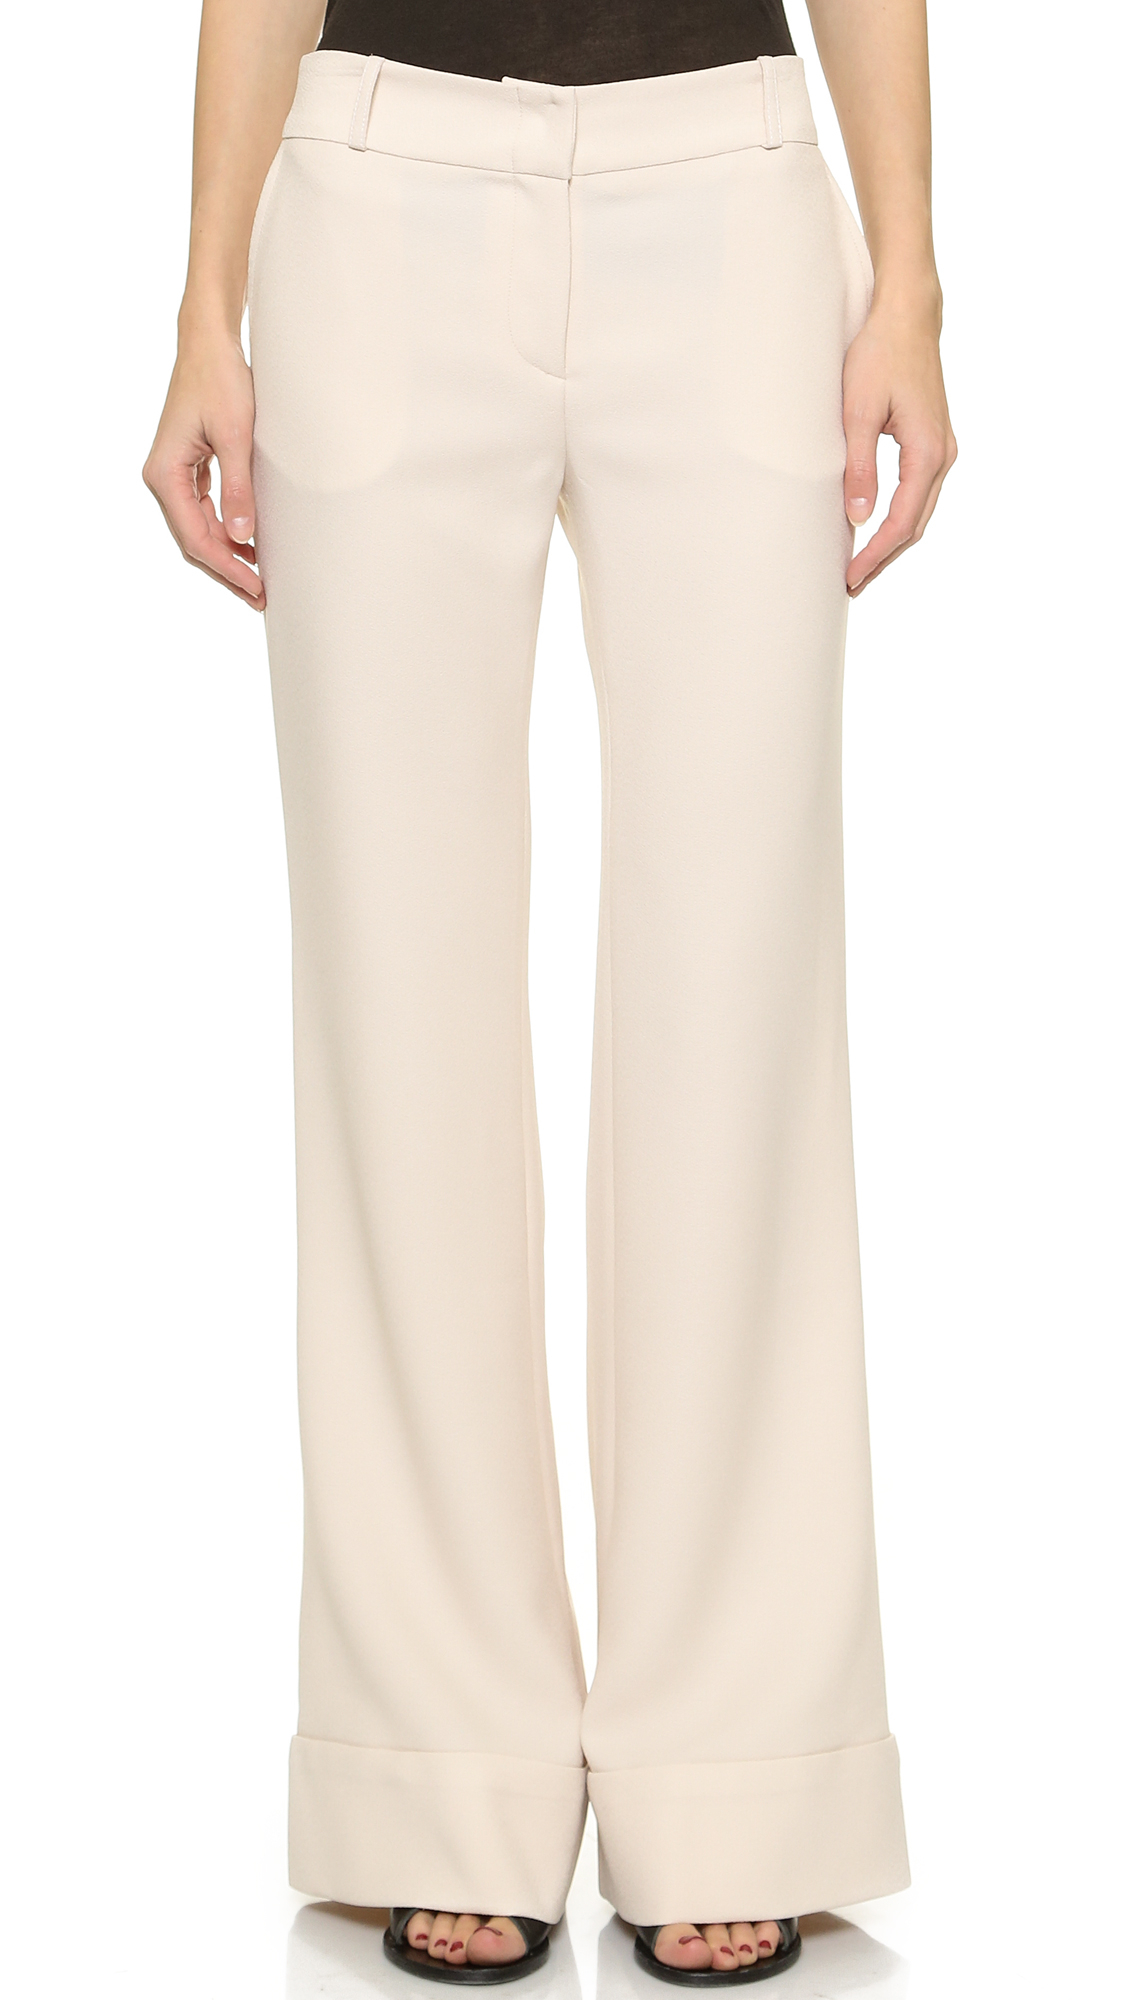 Wide Leg pants & Flares Whether you prefer palazzo or wide leg, baggy pants are back this season, with supersize silhouettes reigning supreme. Working volume into your closet, we love how whimsical the flowing wide leg feels.